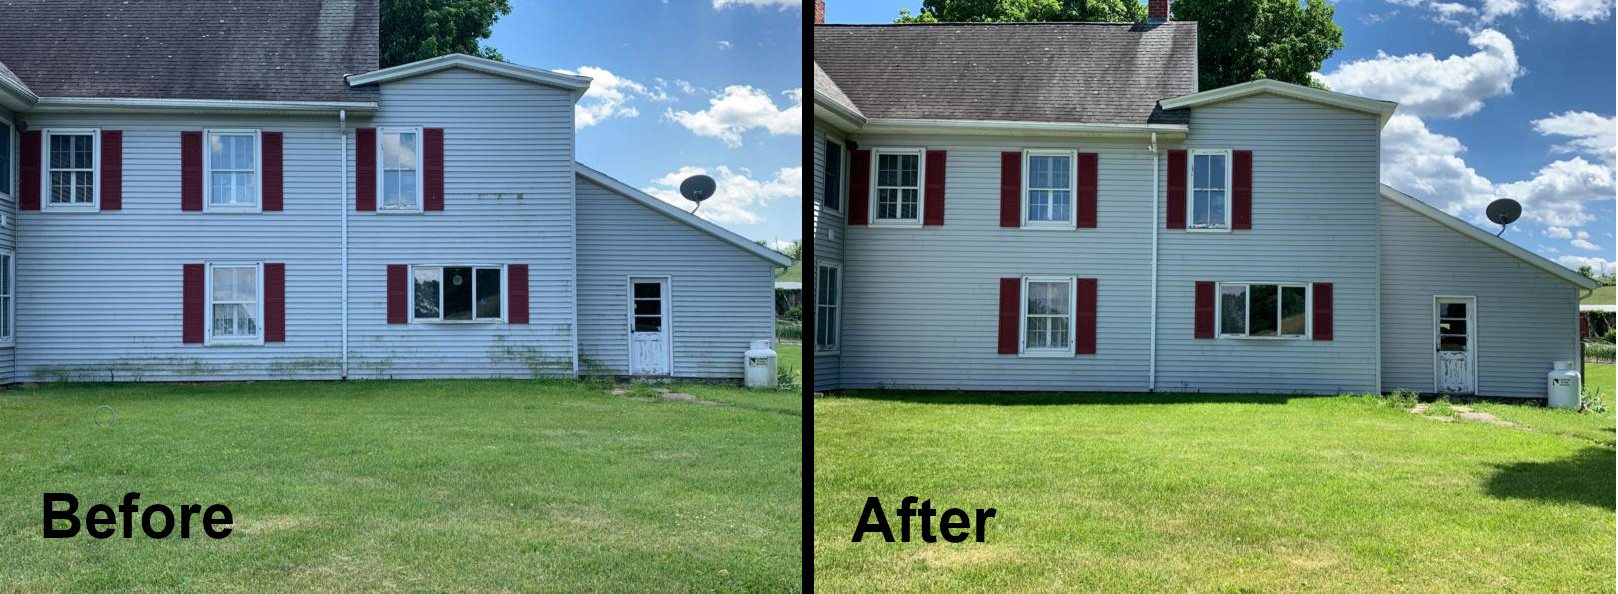 Soft wash siding warwick before and after